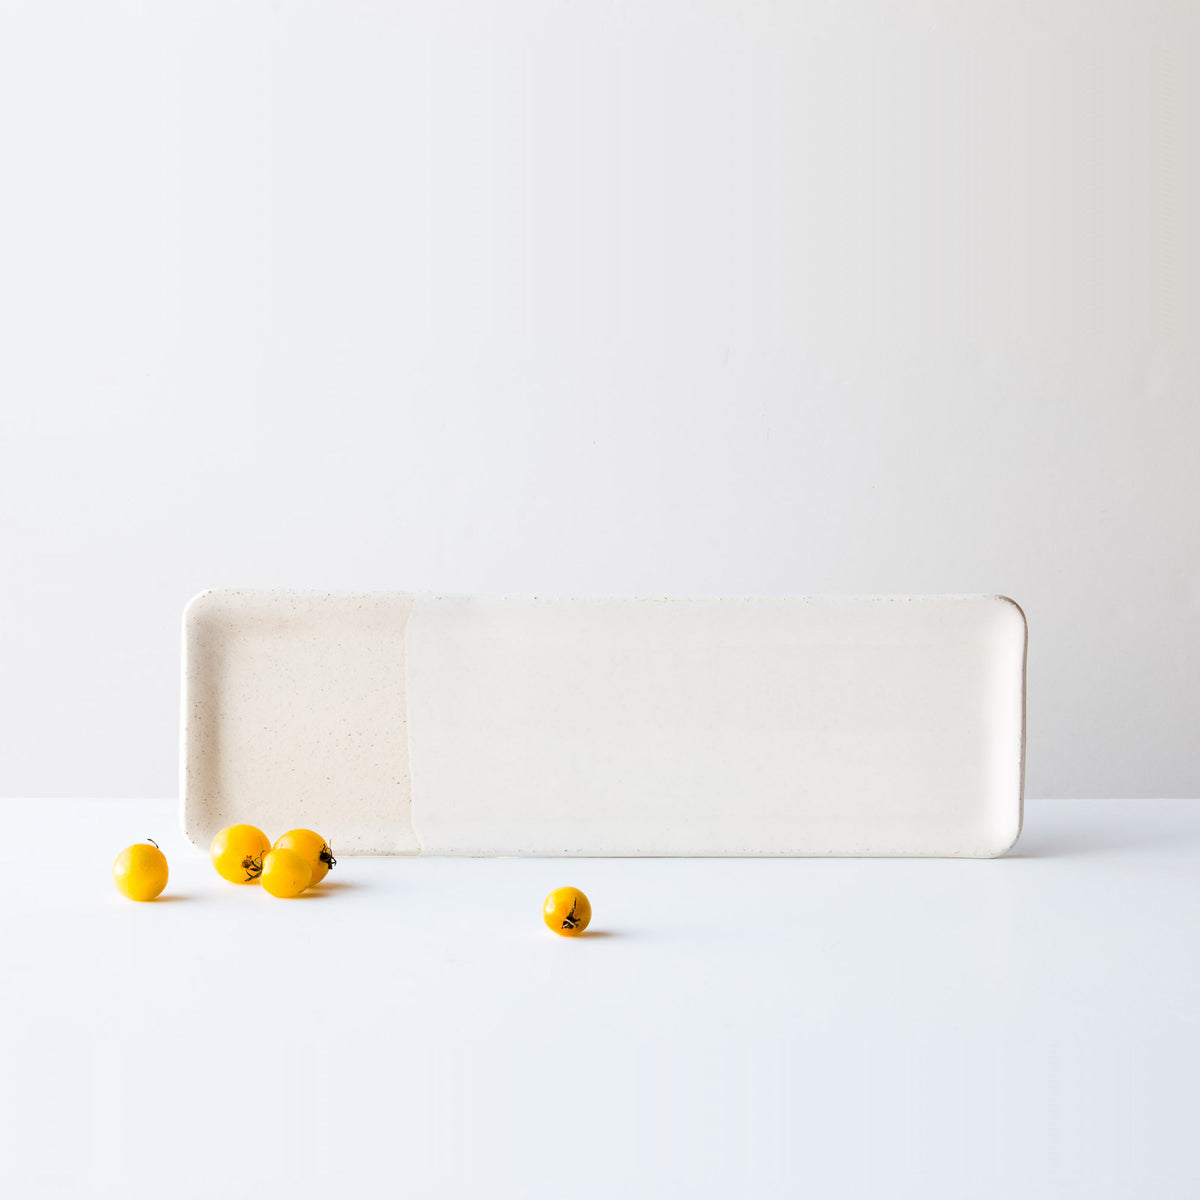 Oatmeal Clay - Long Ceramic Serving Platter - Handmade in Canada - Sold by Chic & Basta